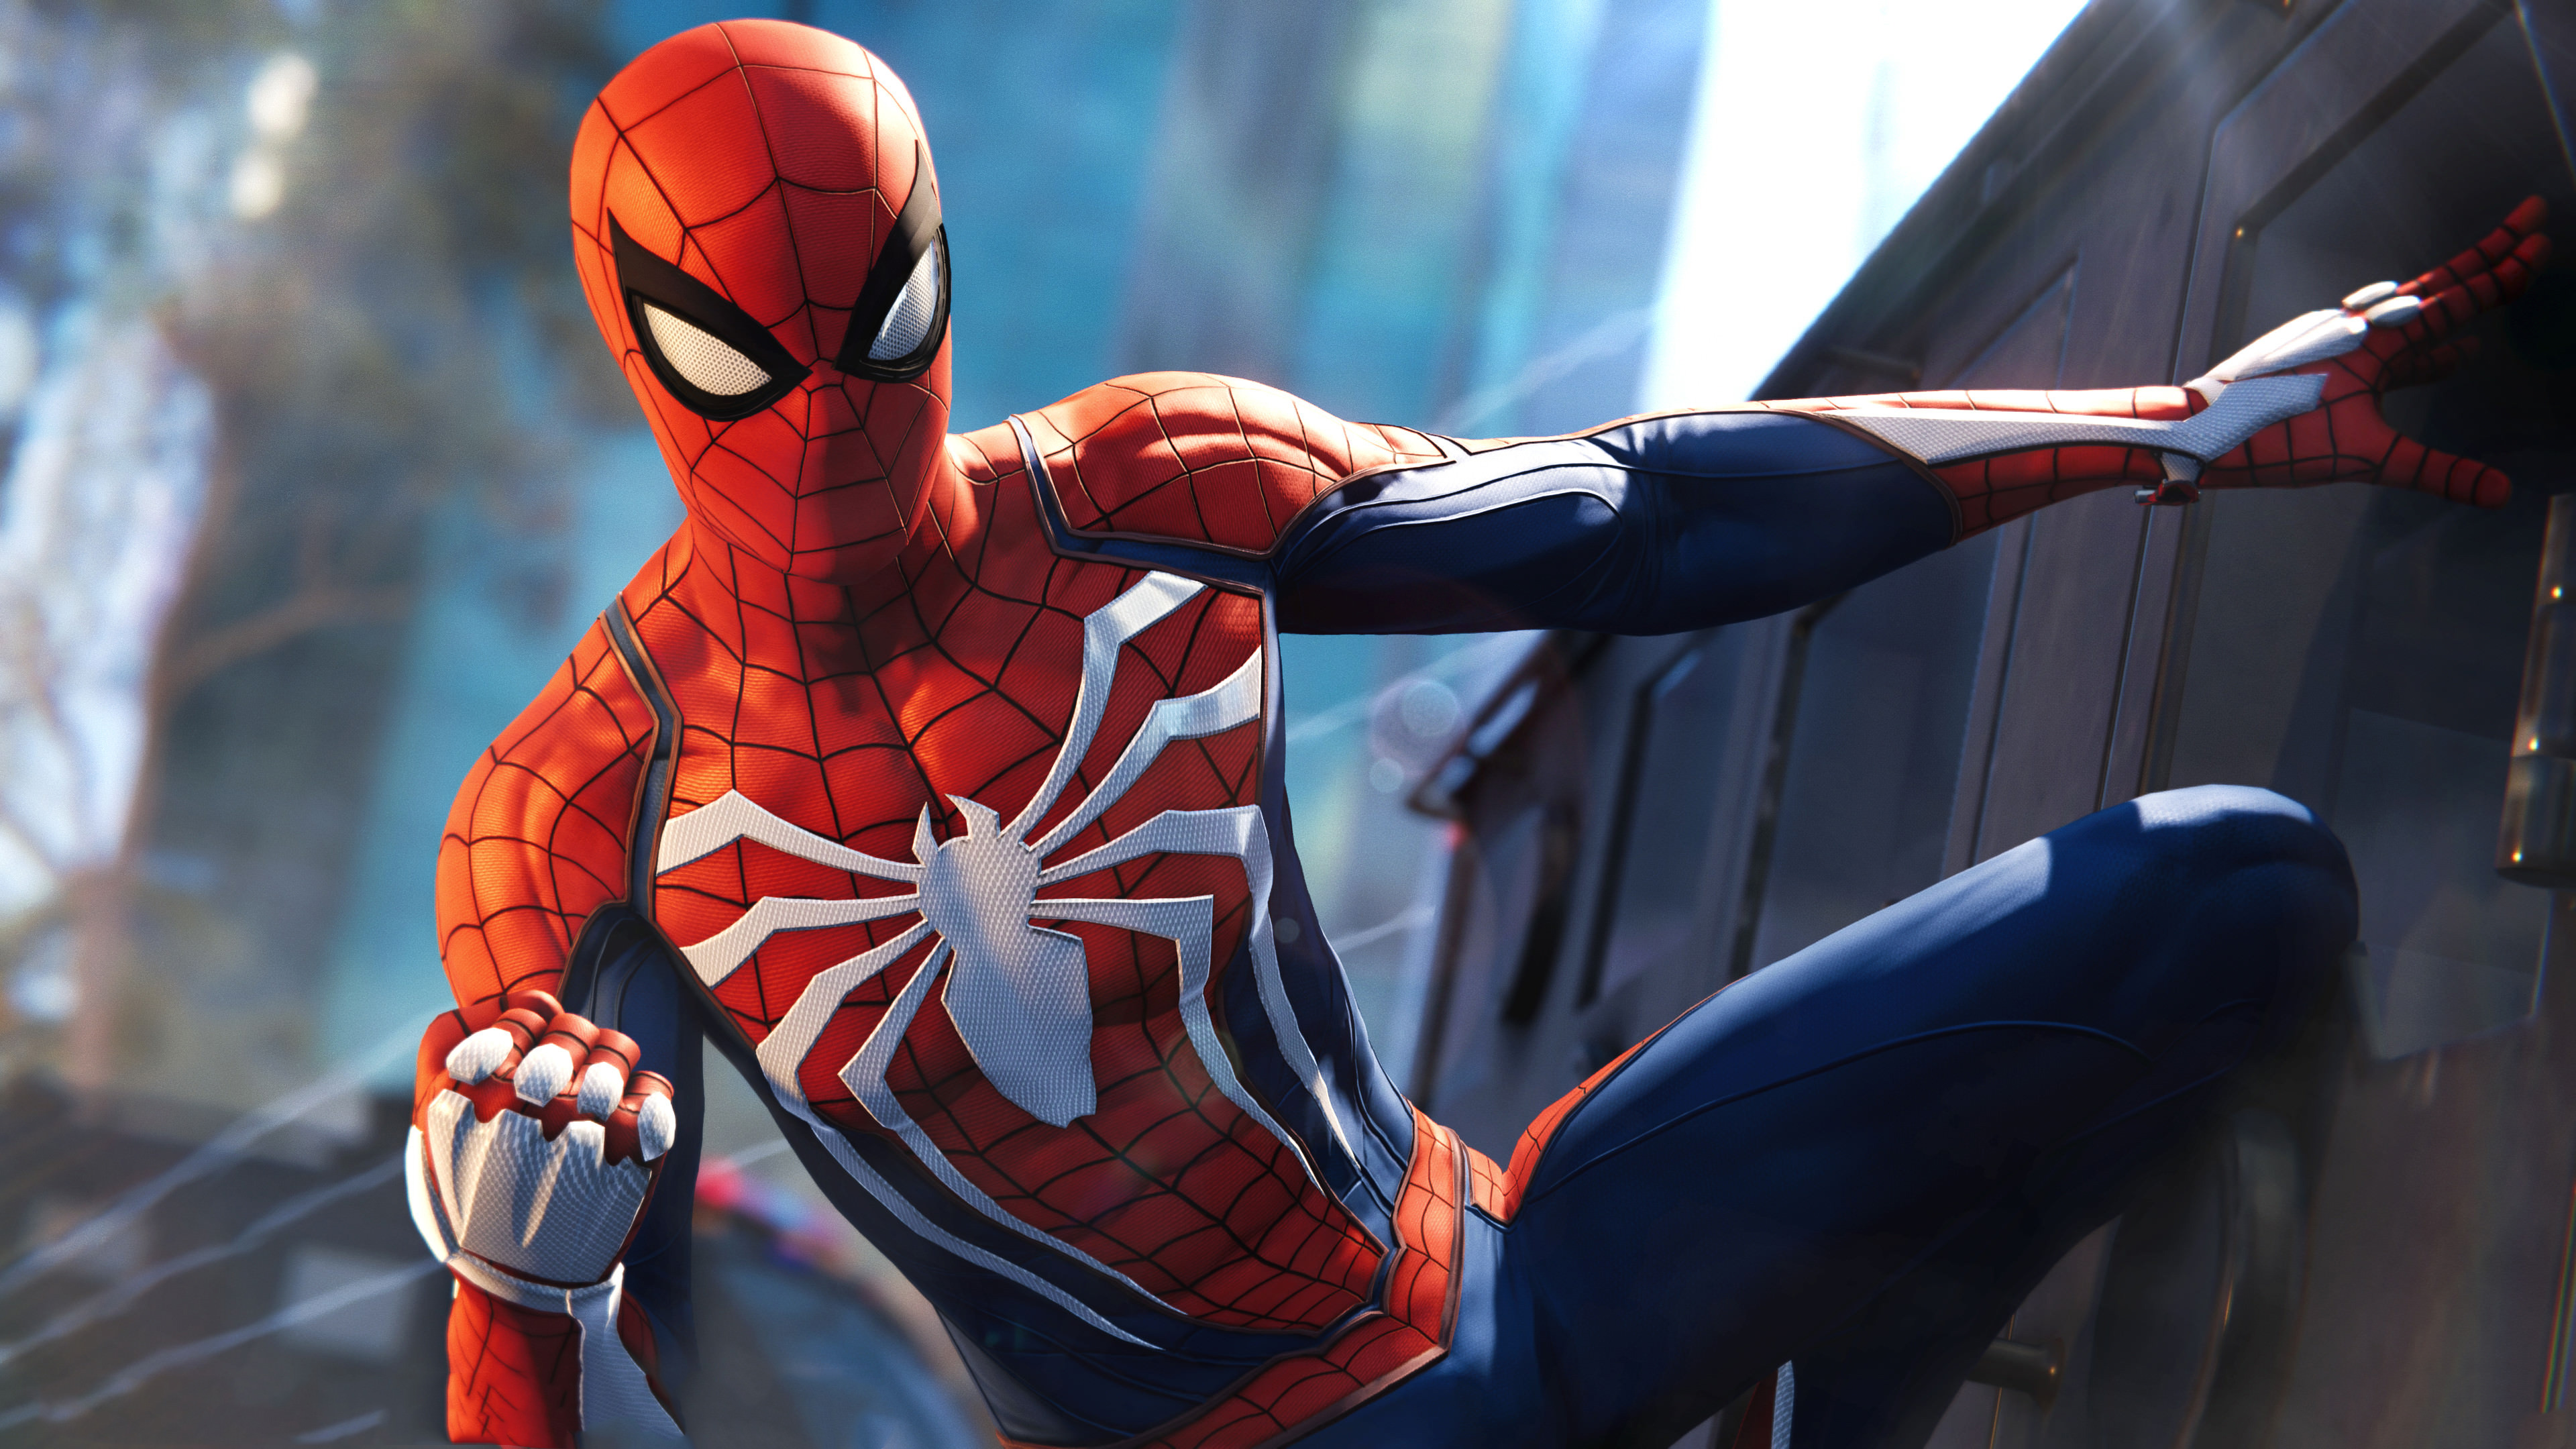 spiderman ps4 pro video game 4k 1537691498 - Spiderman PS4 Pro Video Game 4k - superheroes wallpapers, spiderman wallpapers, spiderman ps4 wallpapers, ps games wallpapers, hd-wallpapers, games wallpapers, 4k-wallpapers, 2018 games wallpapers